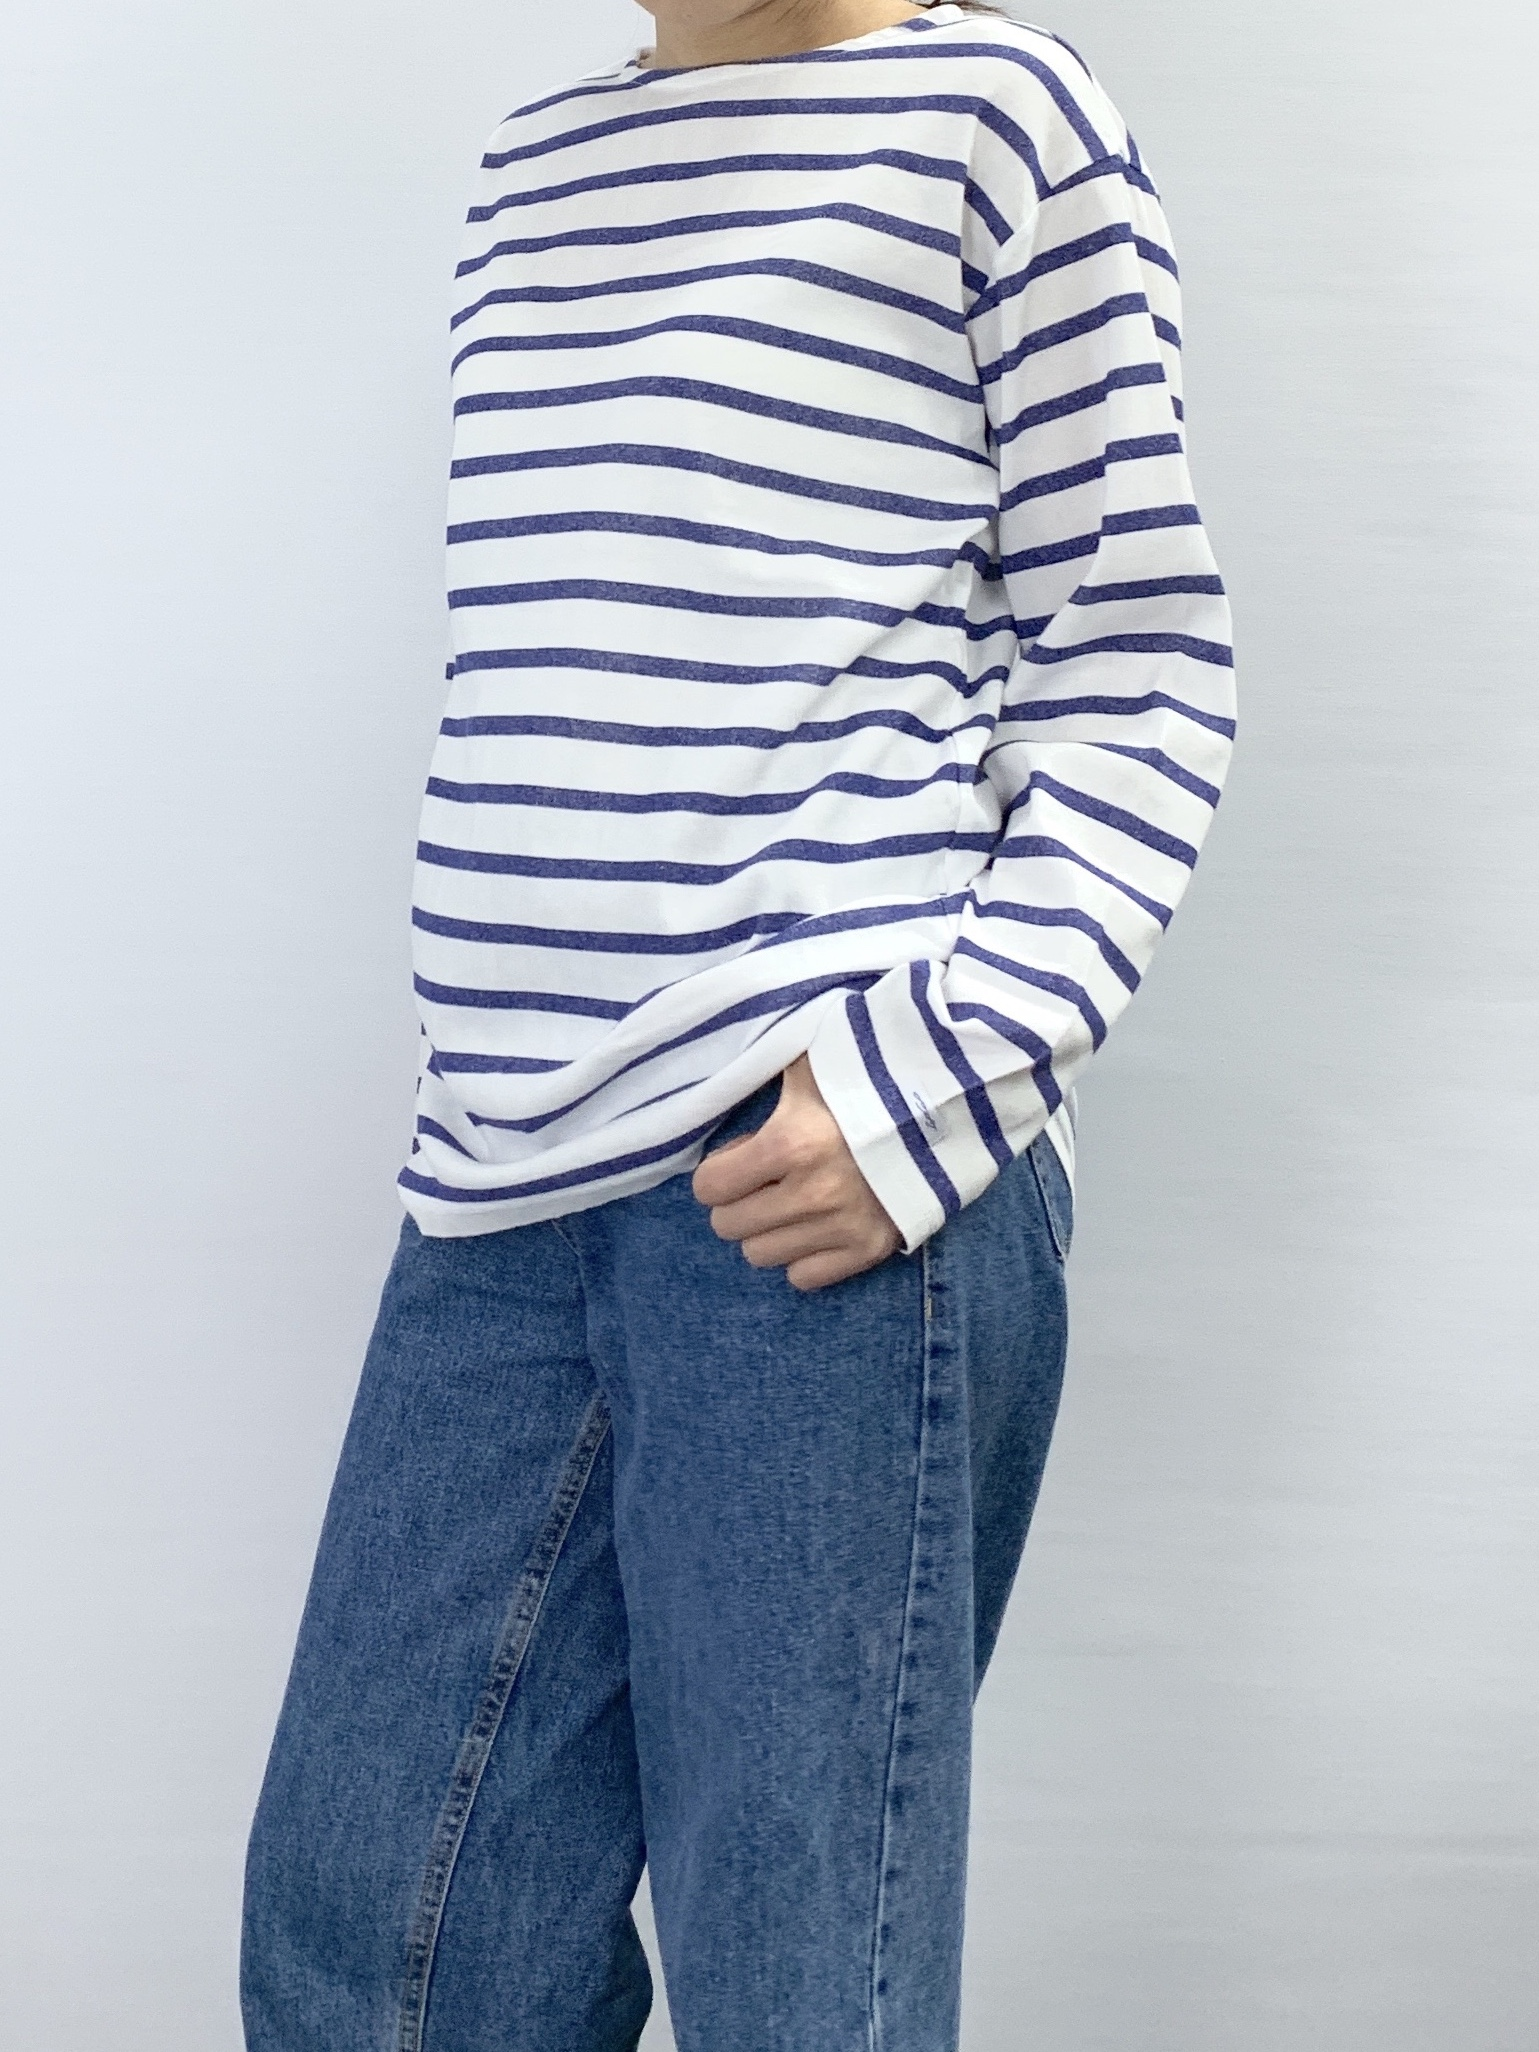 BOAT NECK BORDER LONG SLEEVE T-SHIRT